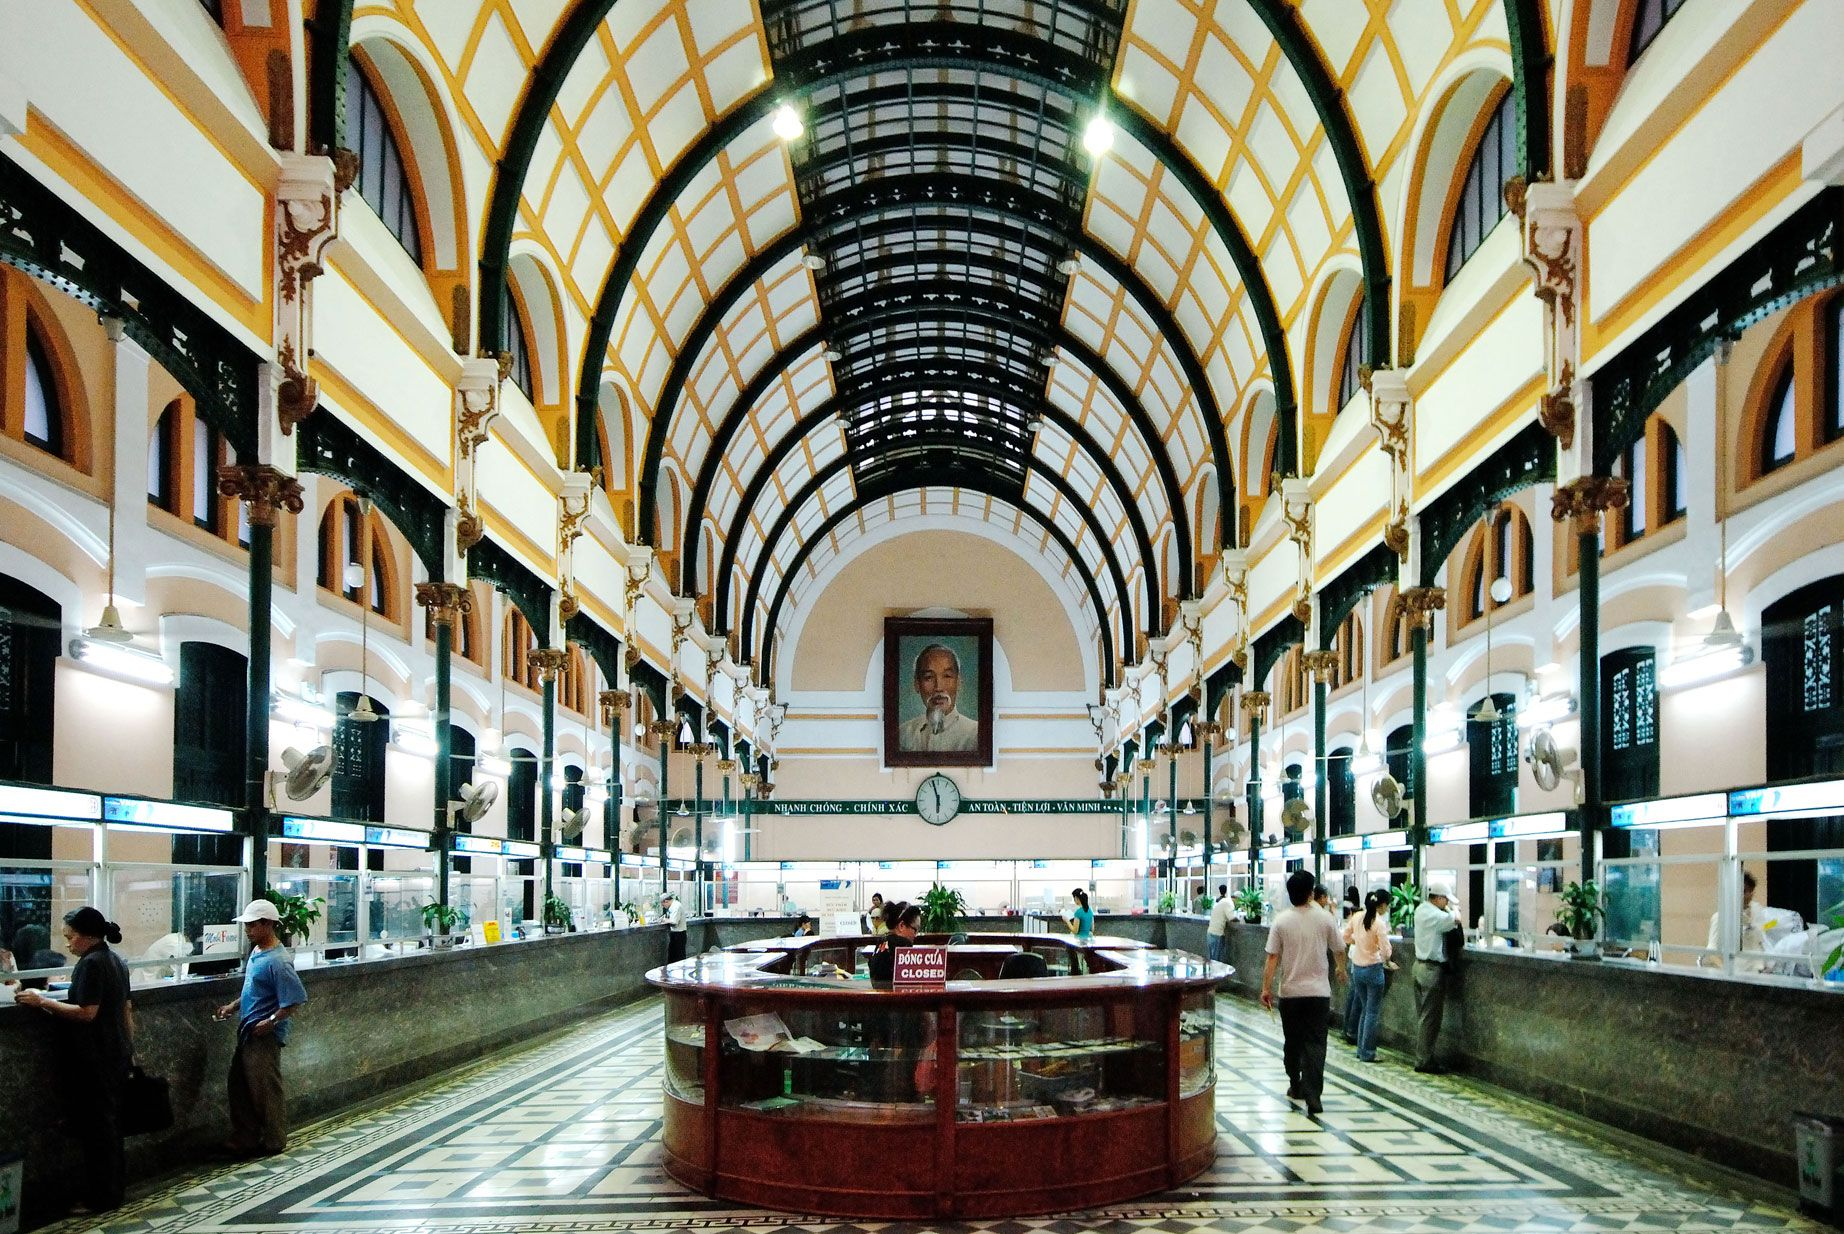 Saigon central postal office in #hcmc built by renowned french